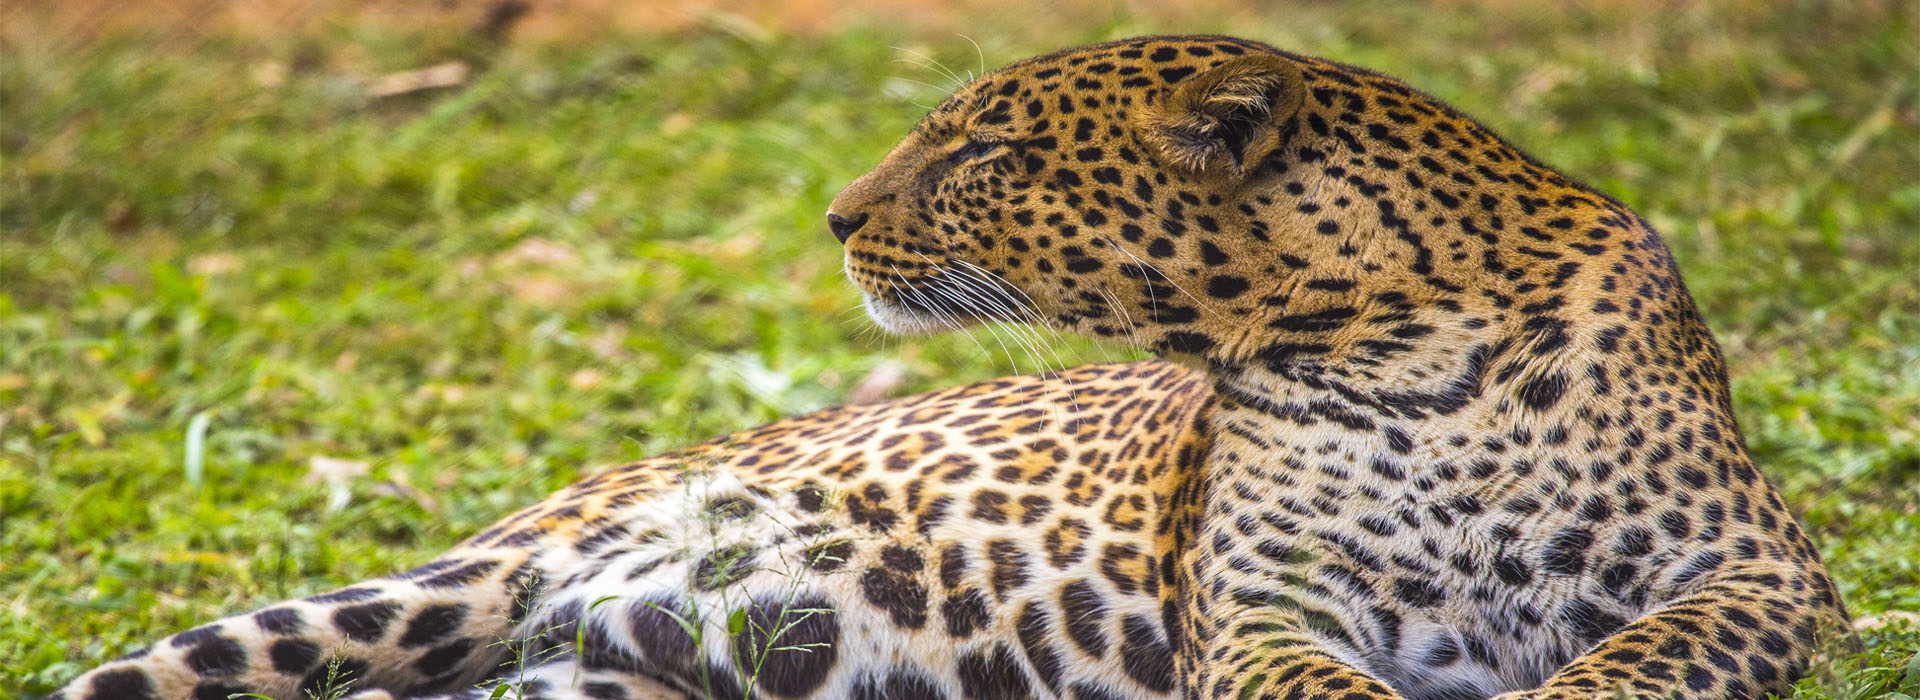 Kenya and Tanzania Tour - African adventure Specialists